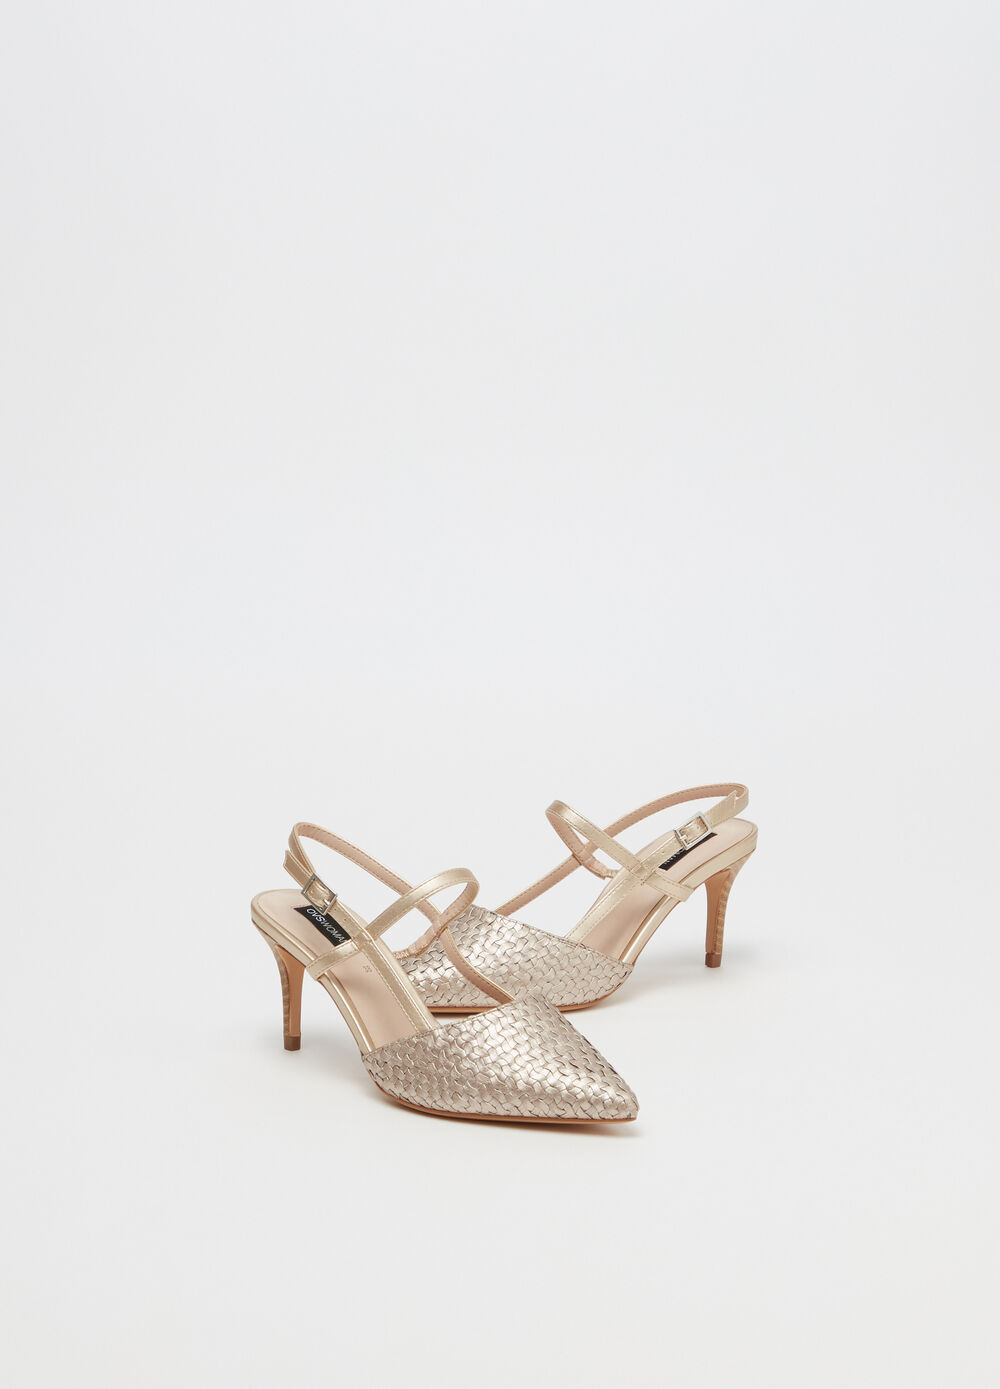 Pointed court shoes with strap